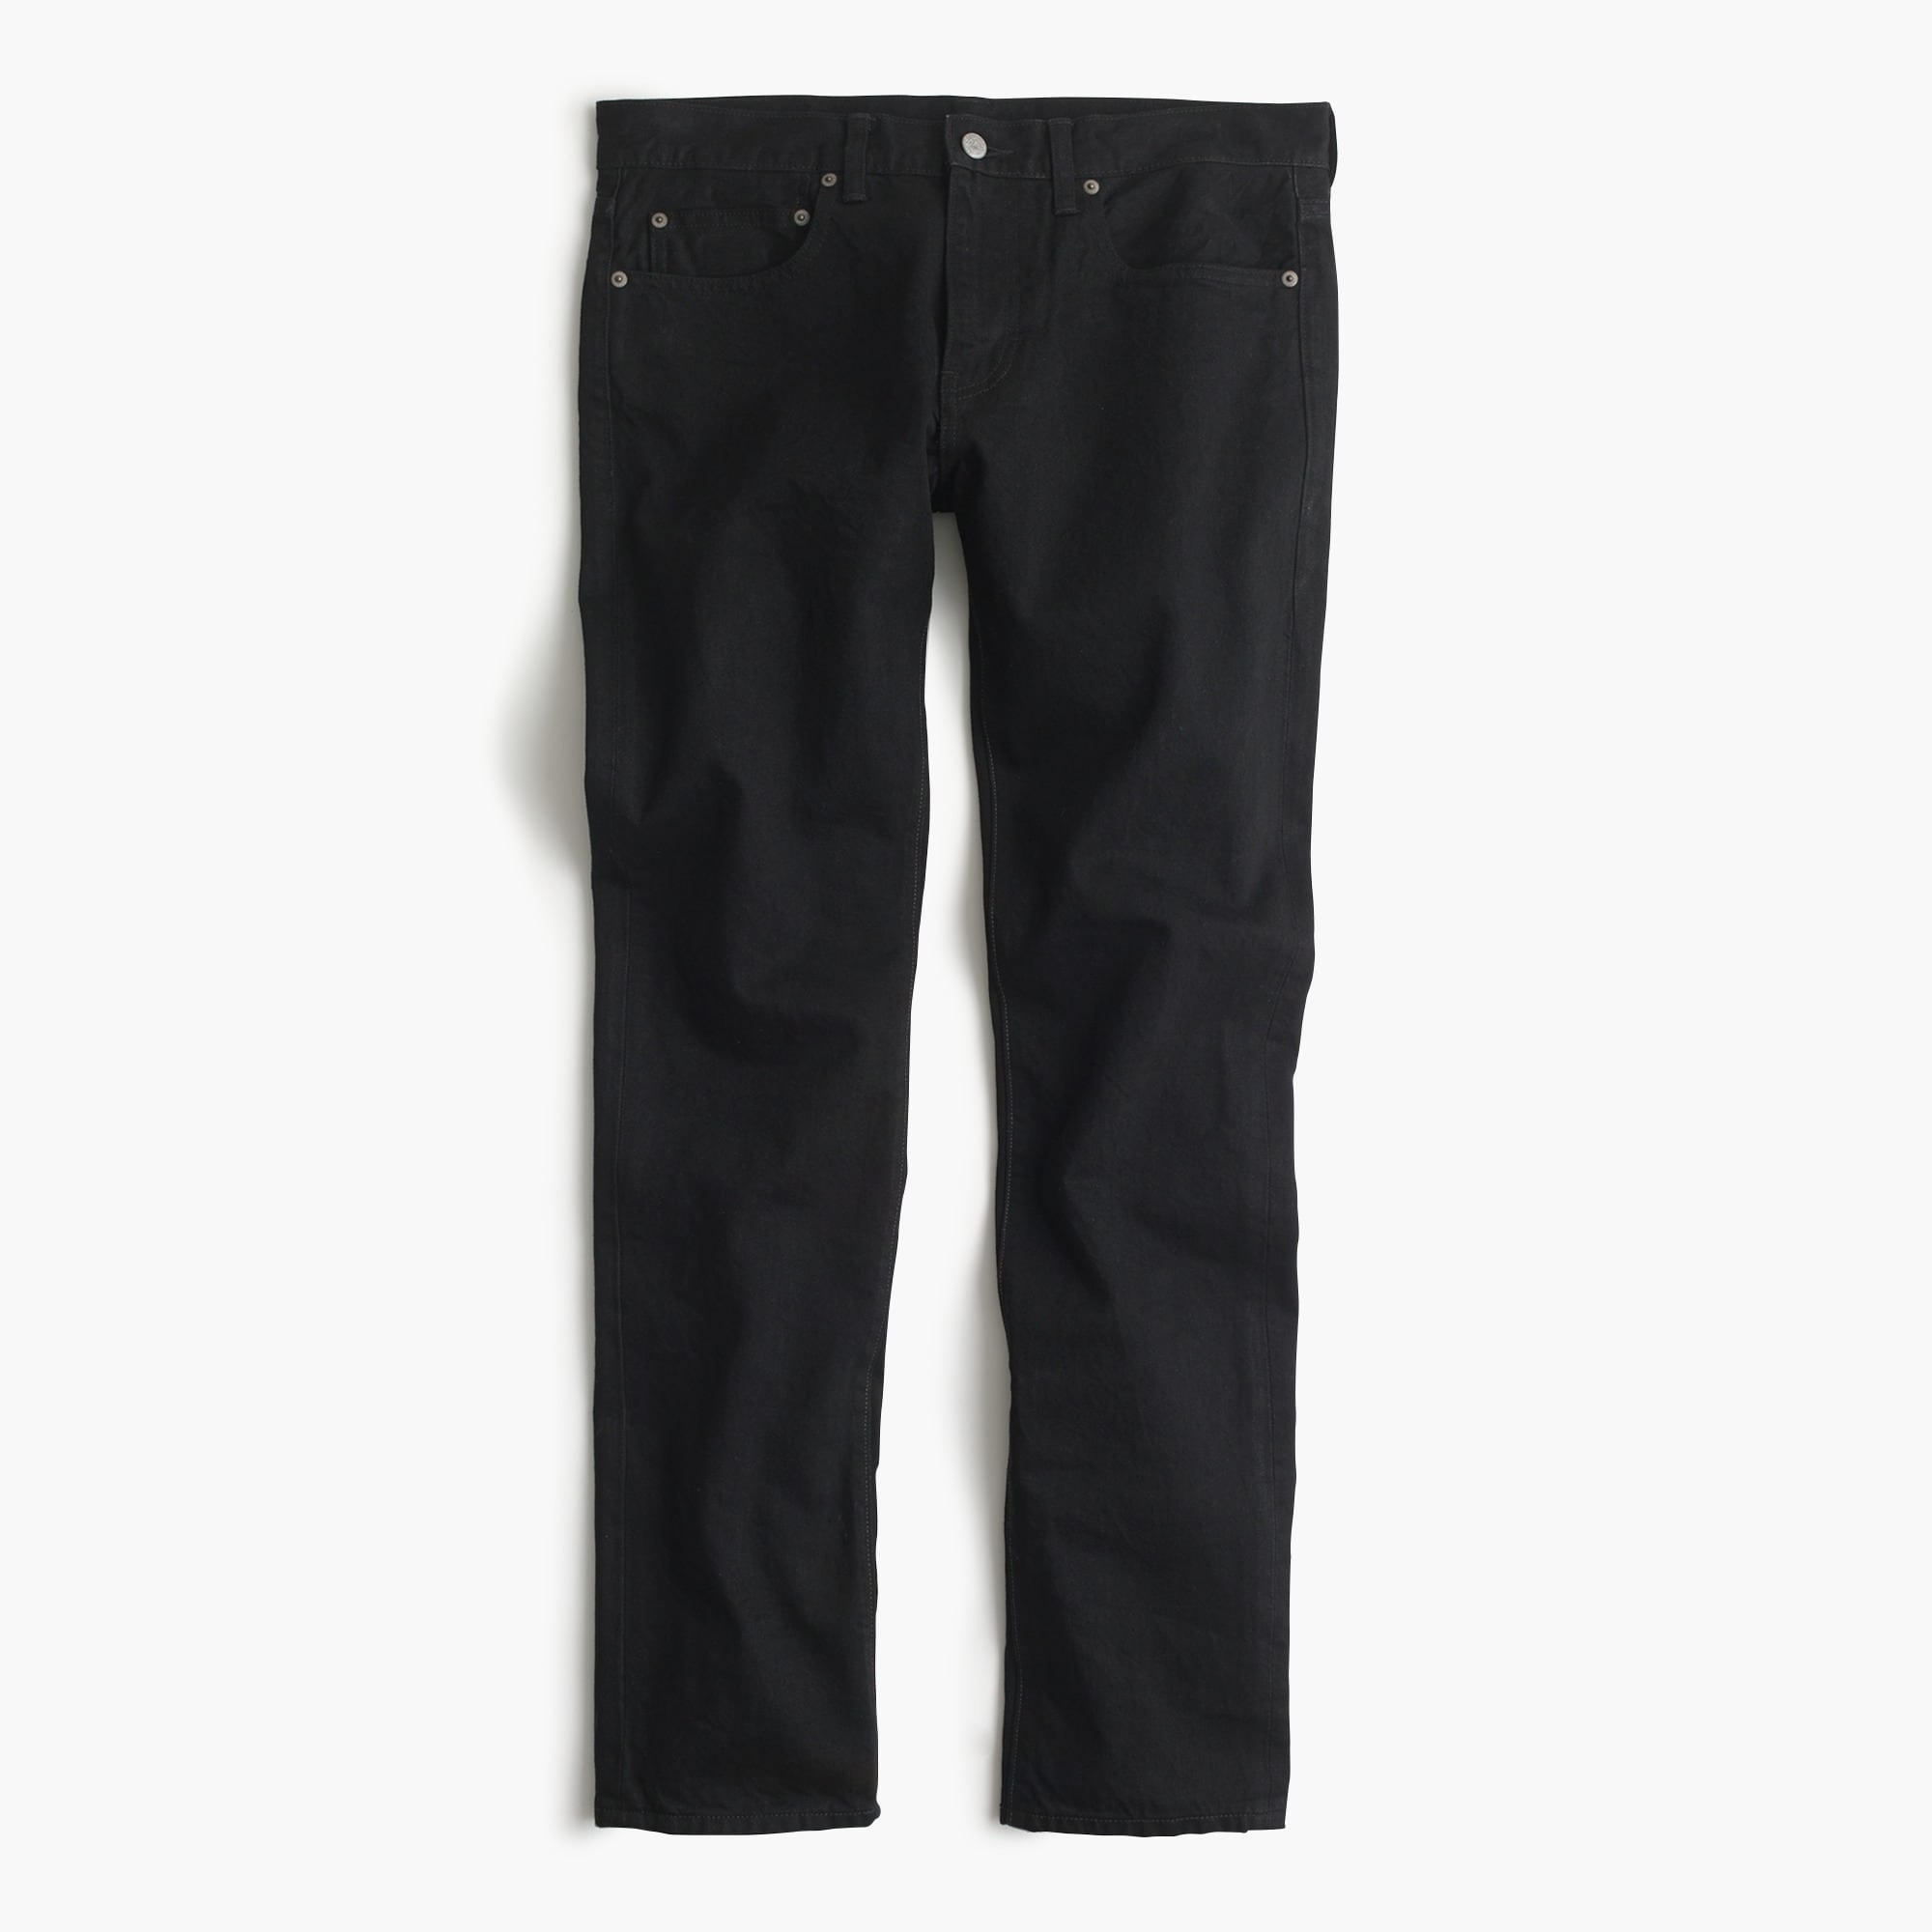 Image 2 for 484 Slim-fit jean in Barnet black wash